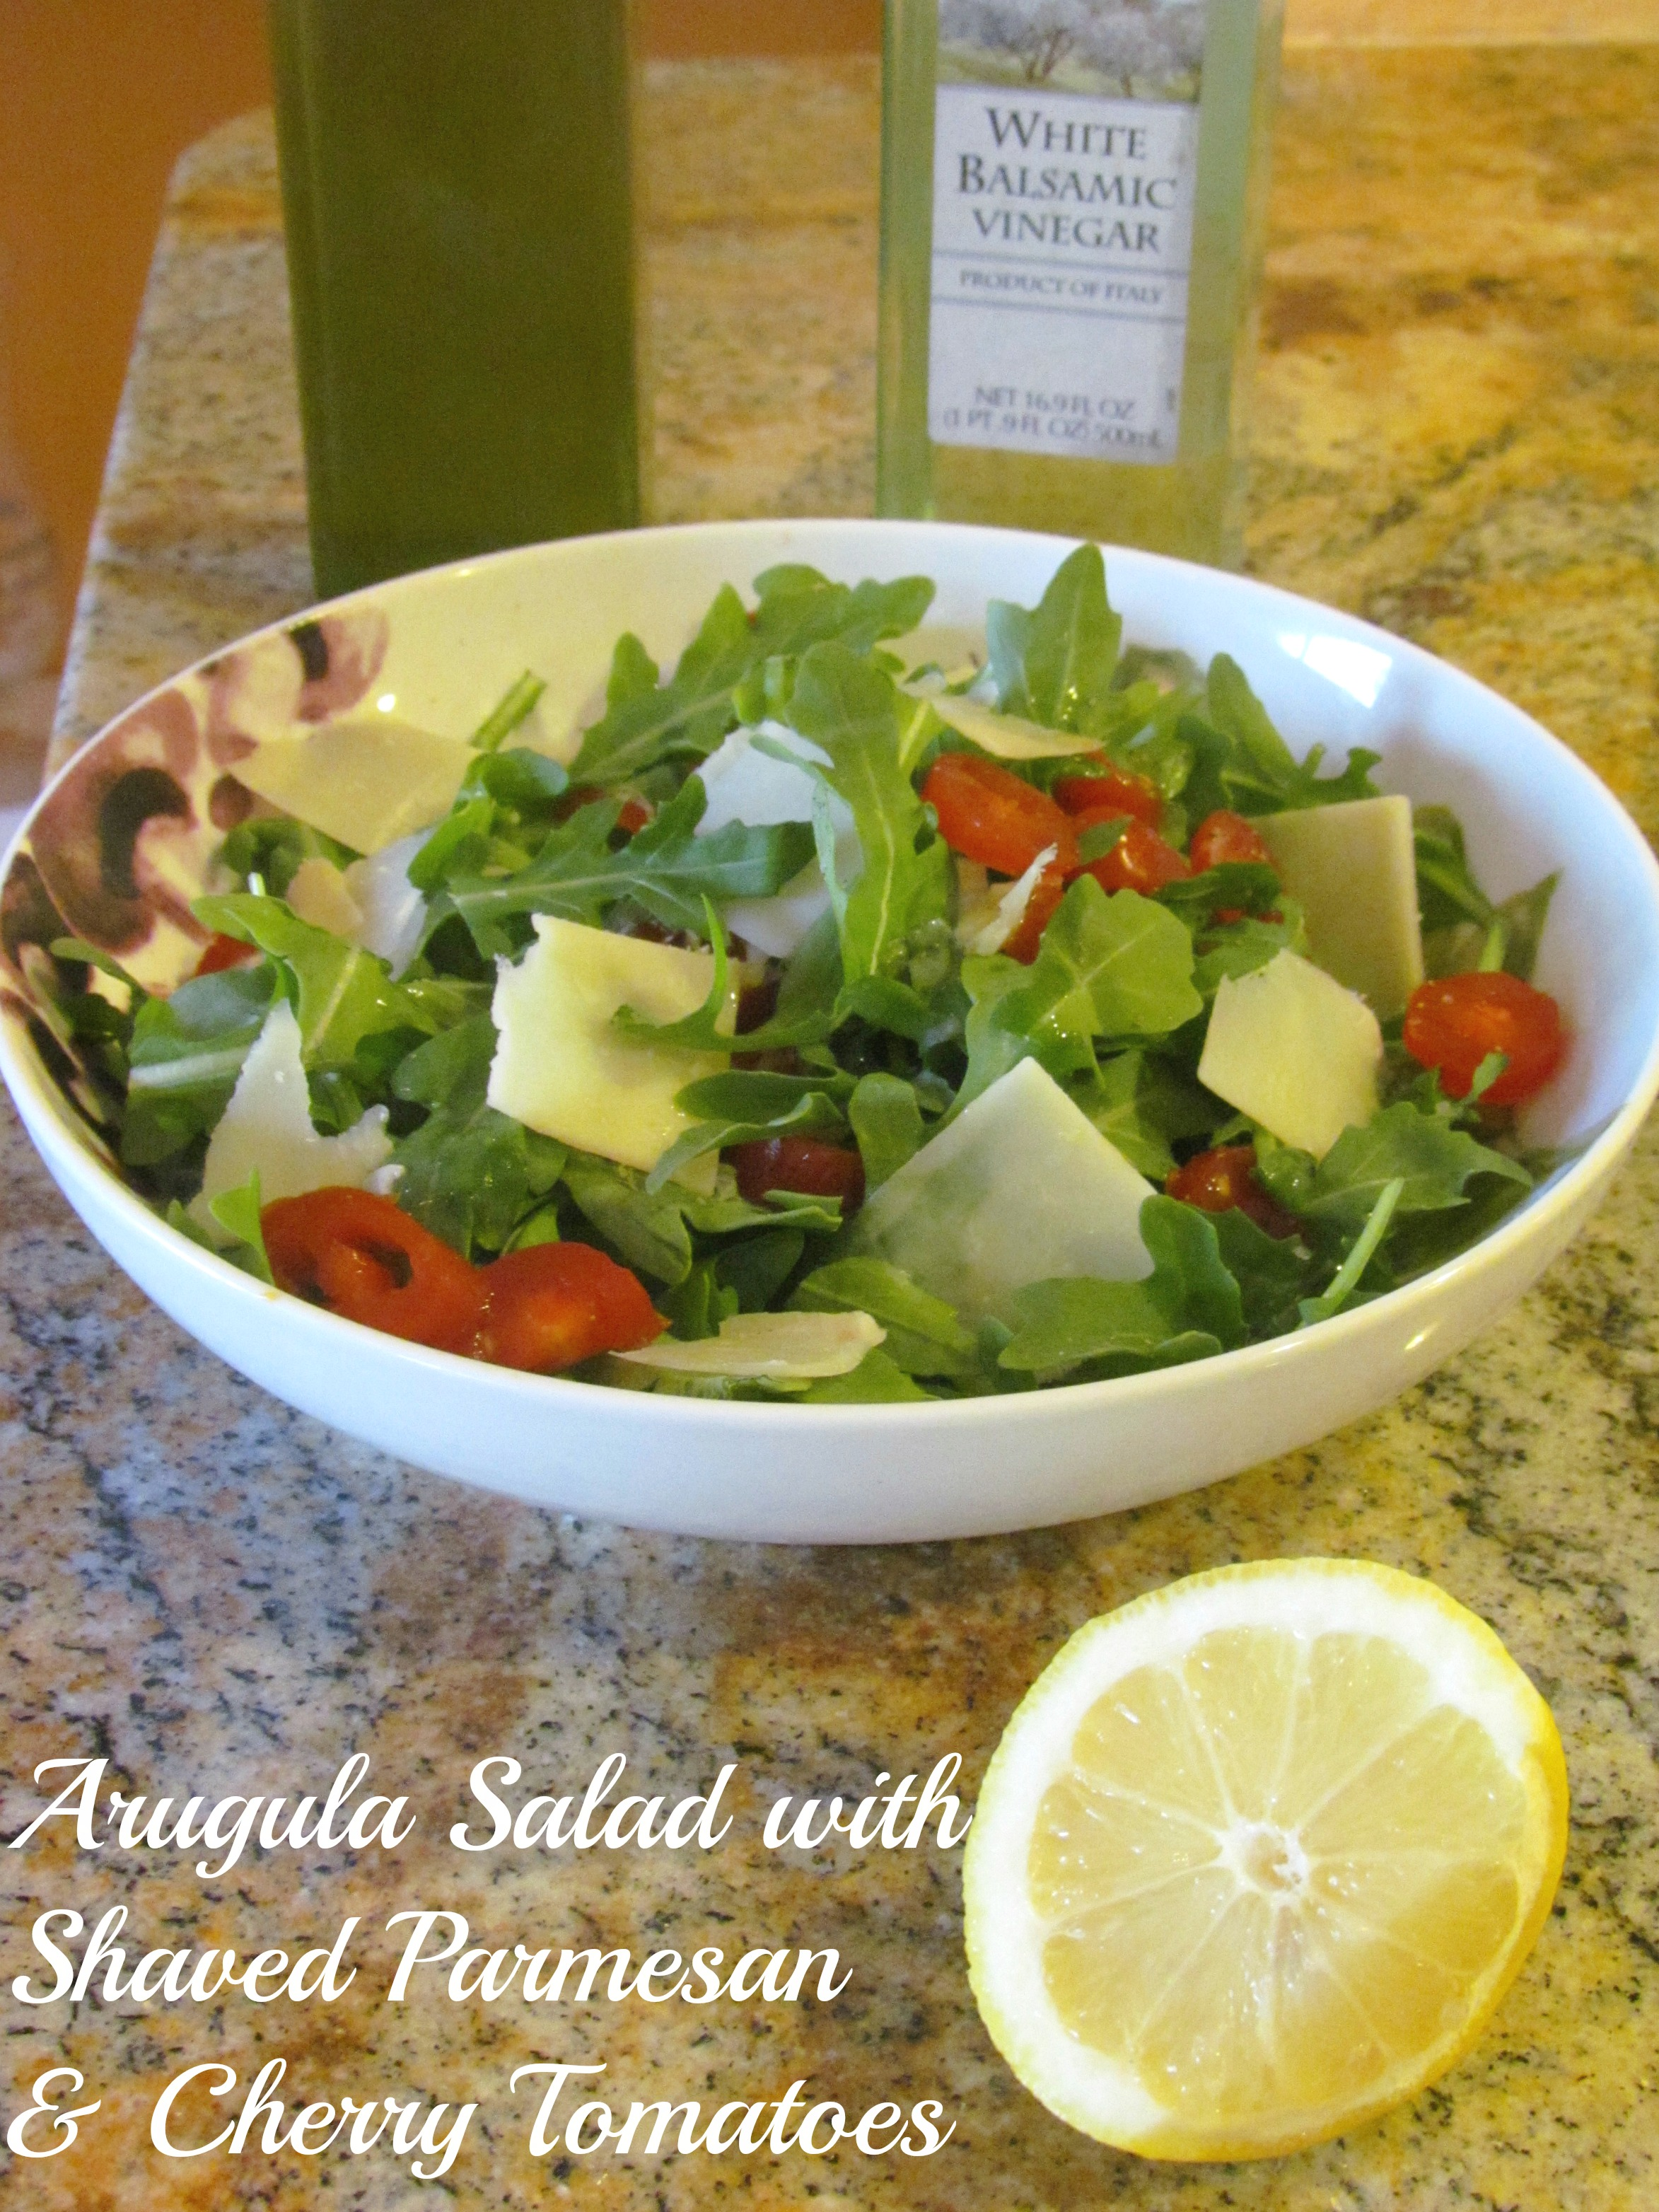 Arugula Salad with Shaved Parmesan & Cherry Tomatoes